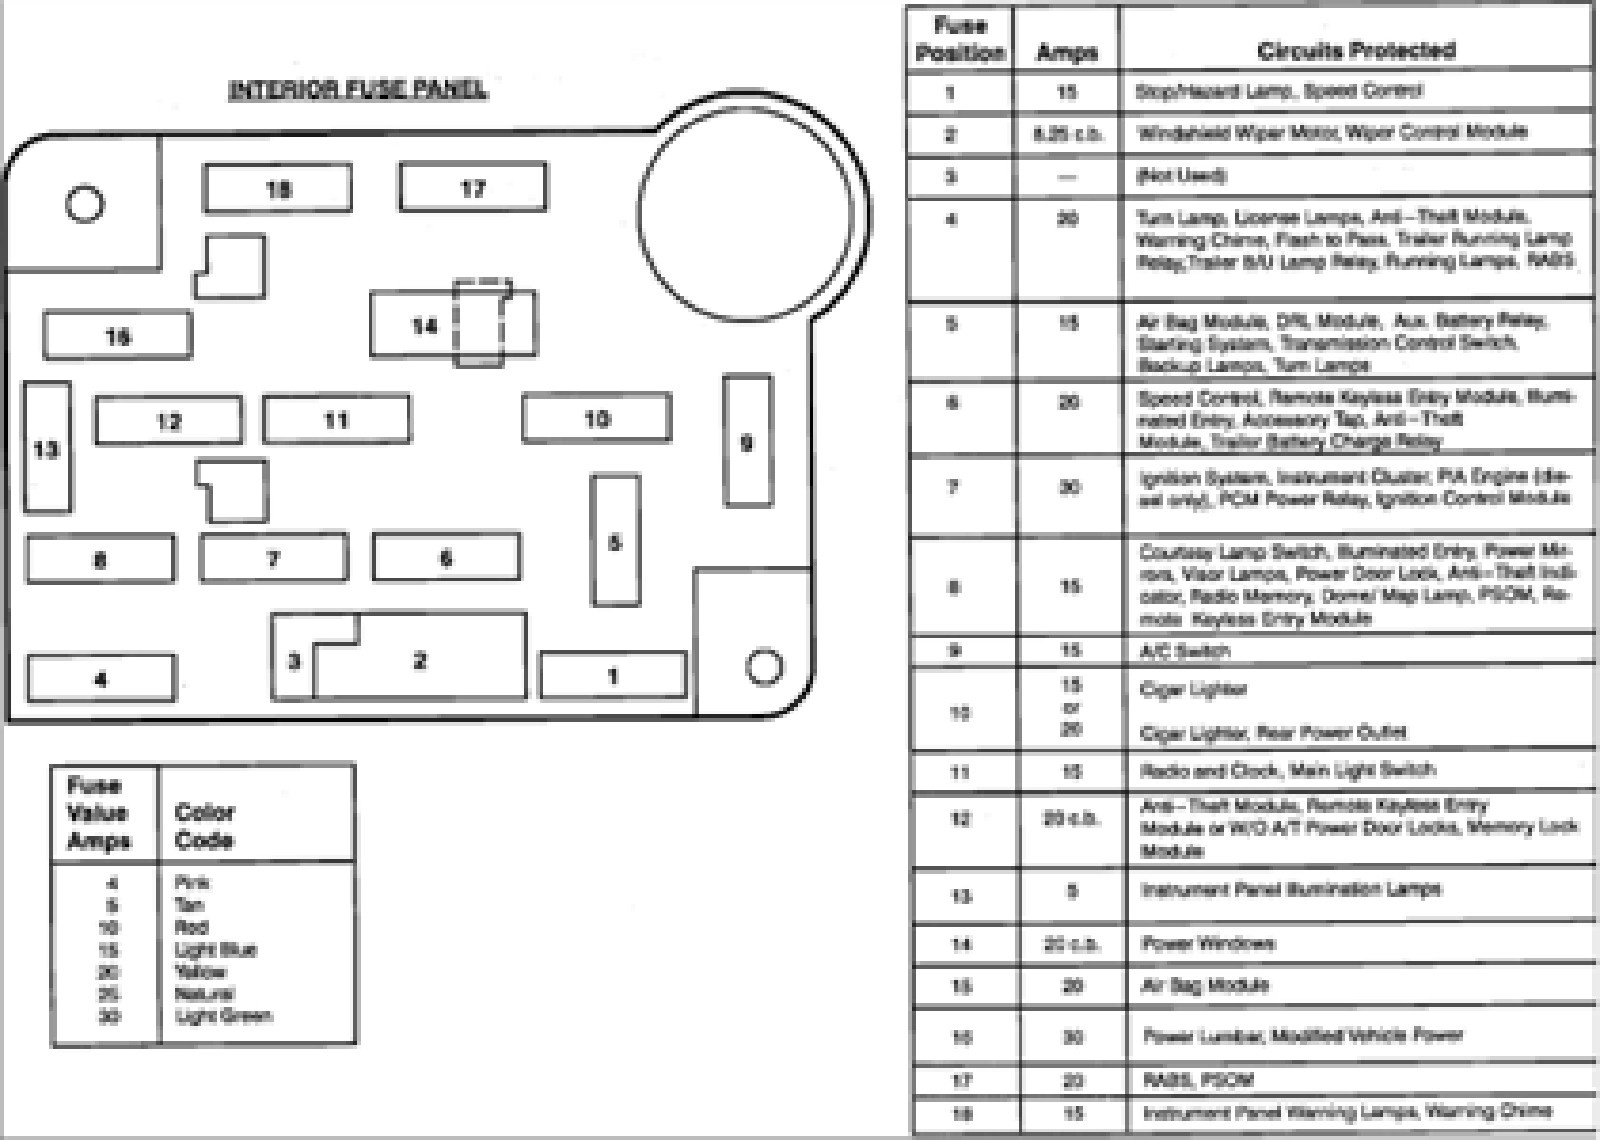 1990 ford ranger fuse box diagram the uptodate wiring diagram rh ks kjgwsx patundchris de